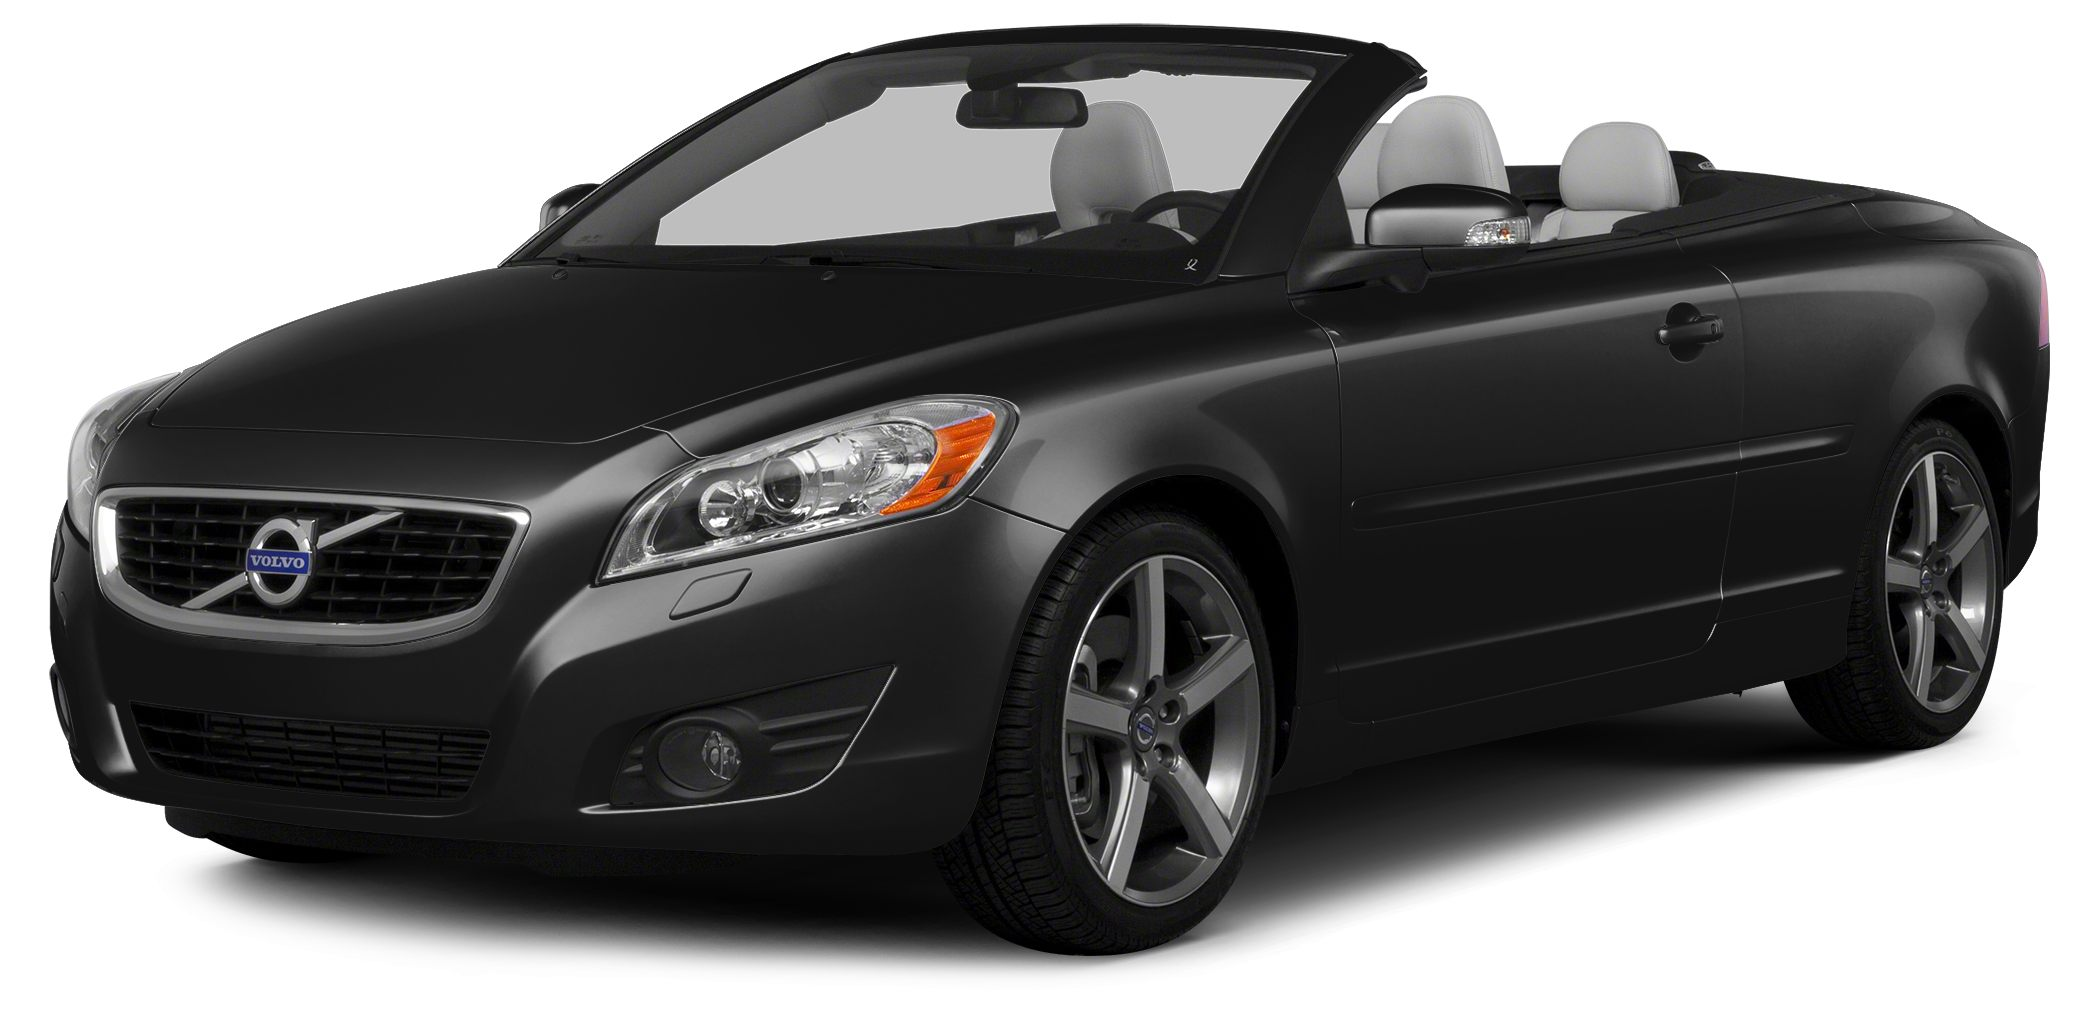 2013 Volvo C70 T5 C70 T5 2D Convertible 25L 5-Cylinder Turbocharged 5-Speed Automatic with Gea